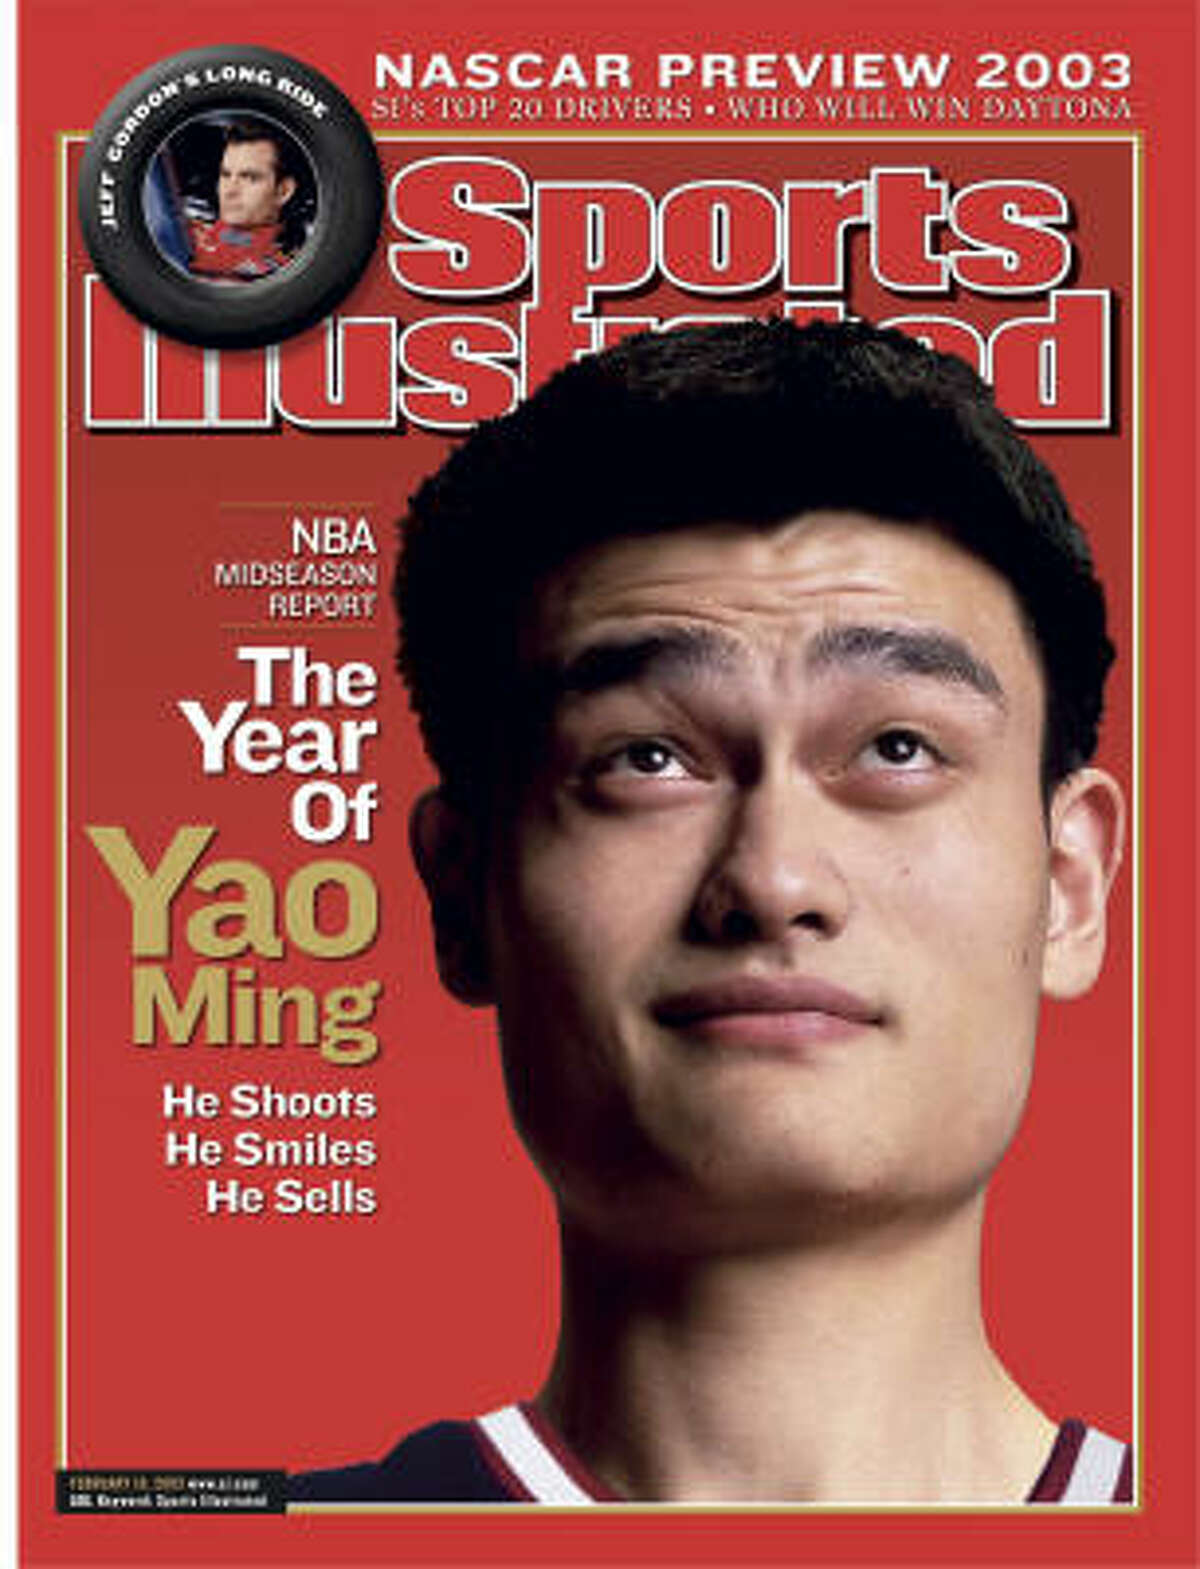 Yao averaged 13.5 points and 8.2 rebounds in his first season in 2002-03, finishing second to Phoenix's Amar'e Stoudemire in voting for NBA Rookie of the Year.